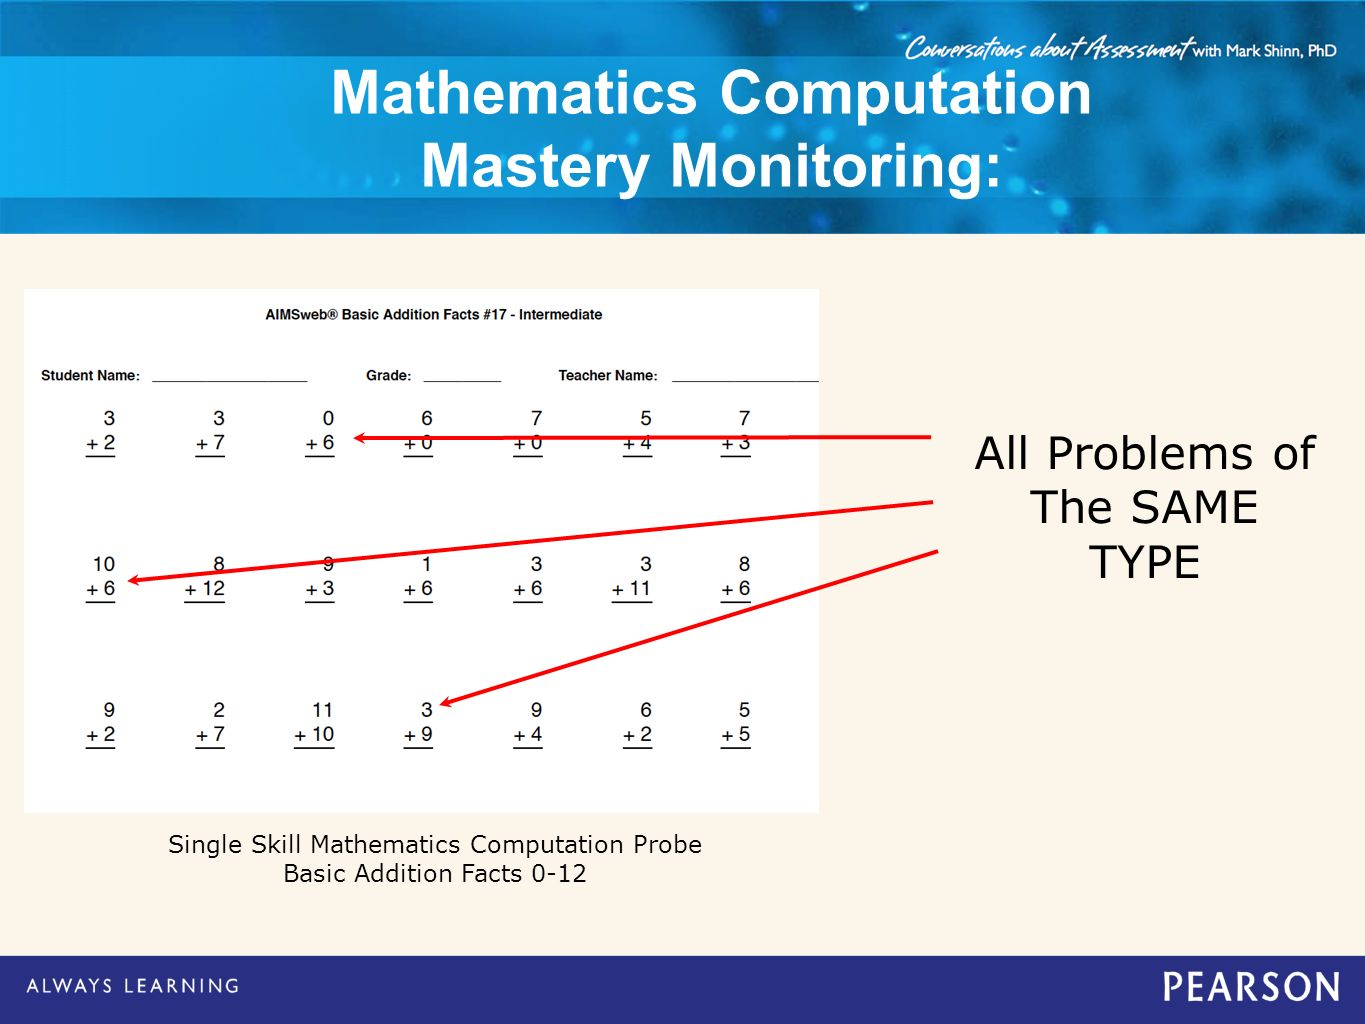 Mathematics Computation Mastery Monitoring: